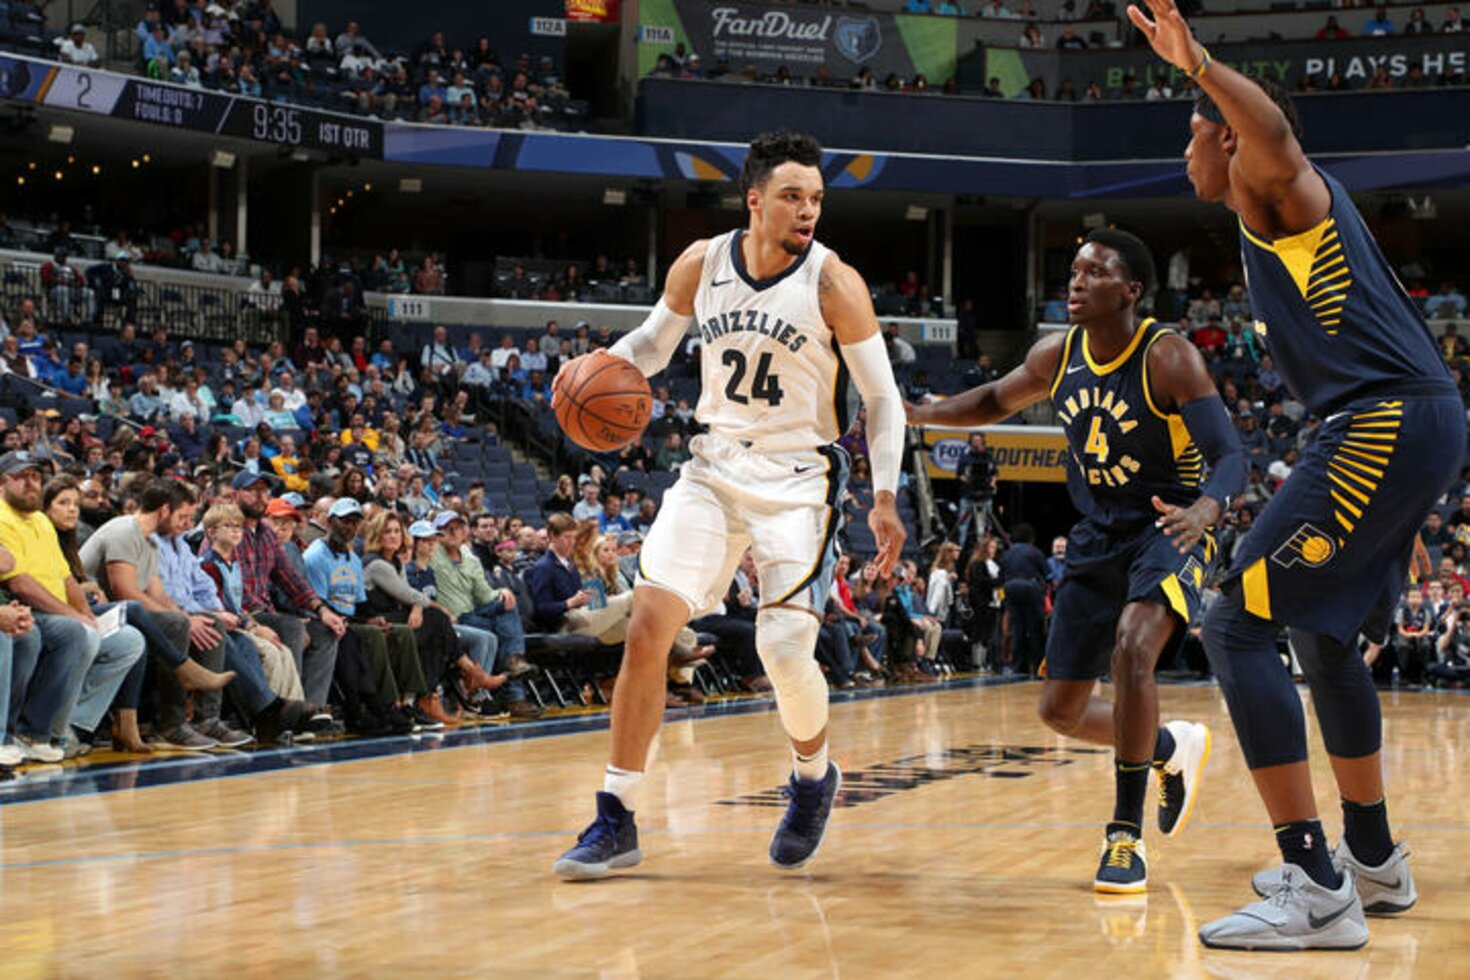 MEMPHIS, TN - NOVEMBER 15:  Dillon Brooks #24 of the Memphis Grizzlies handles the ball against the Indiana Pacers on November 15, 2017 at FedExForum in Memphis, Tennessee.